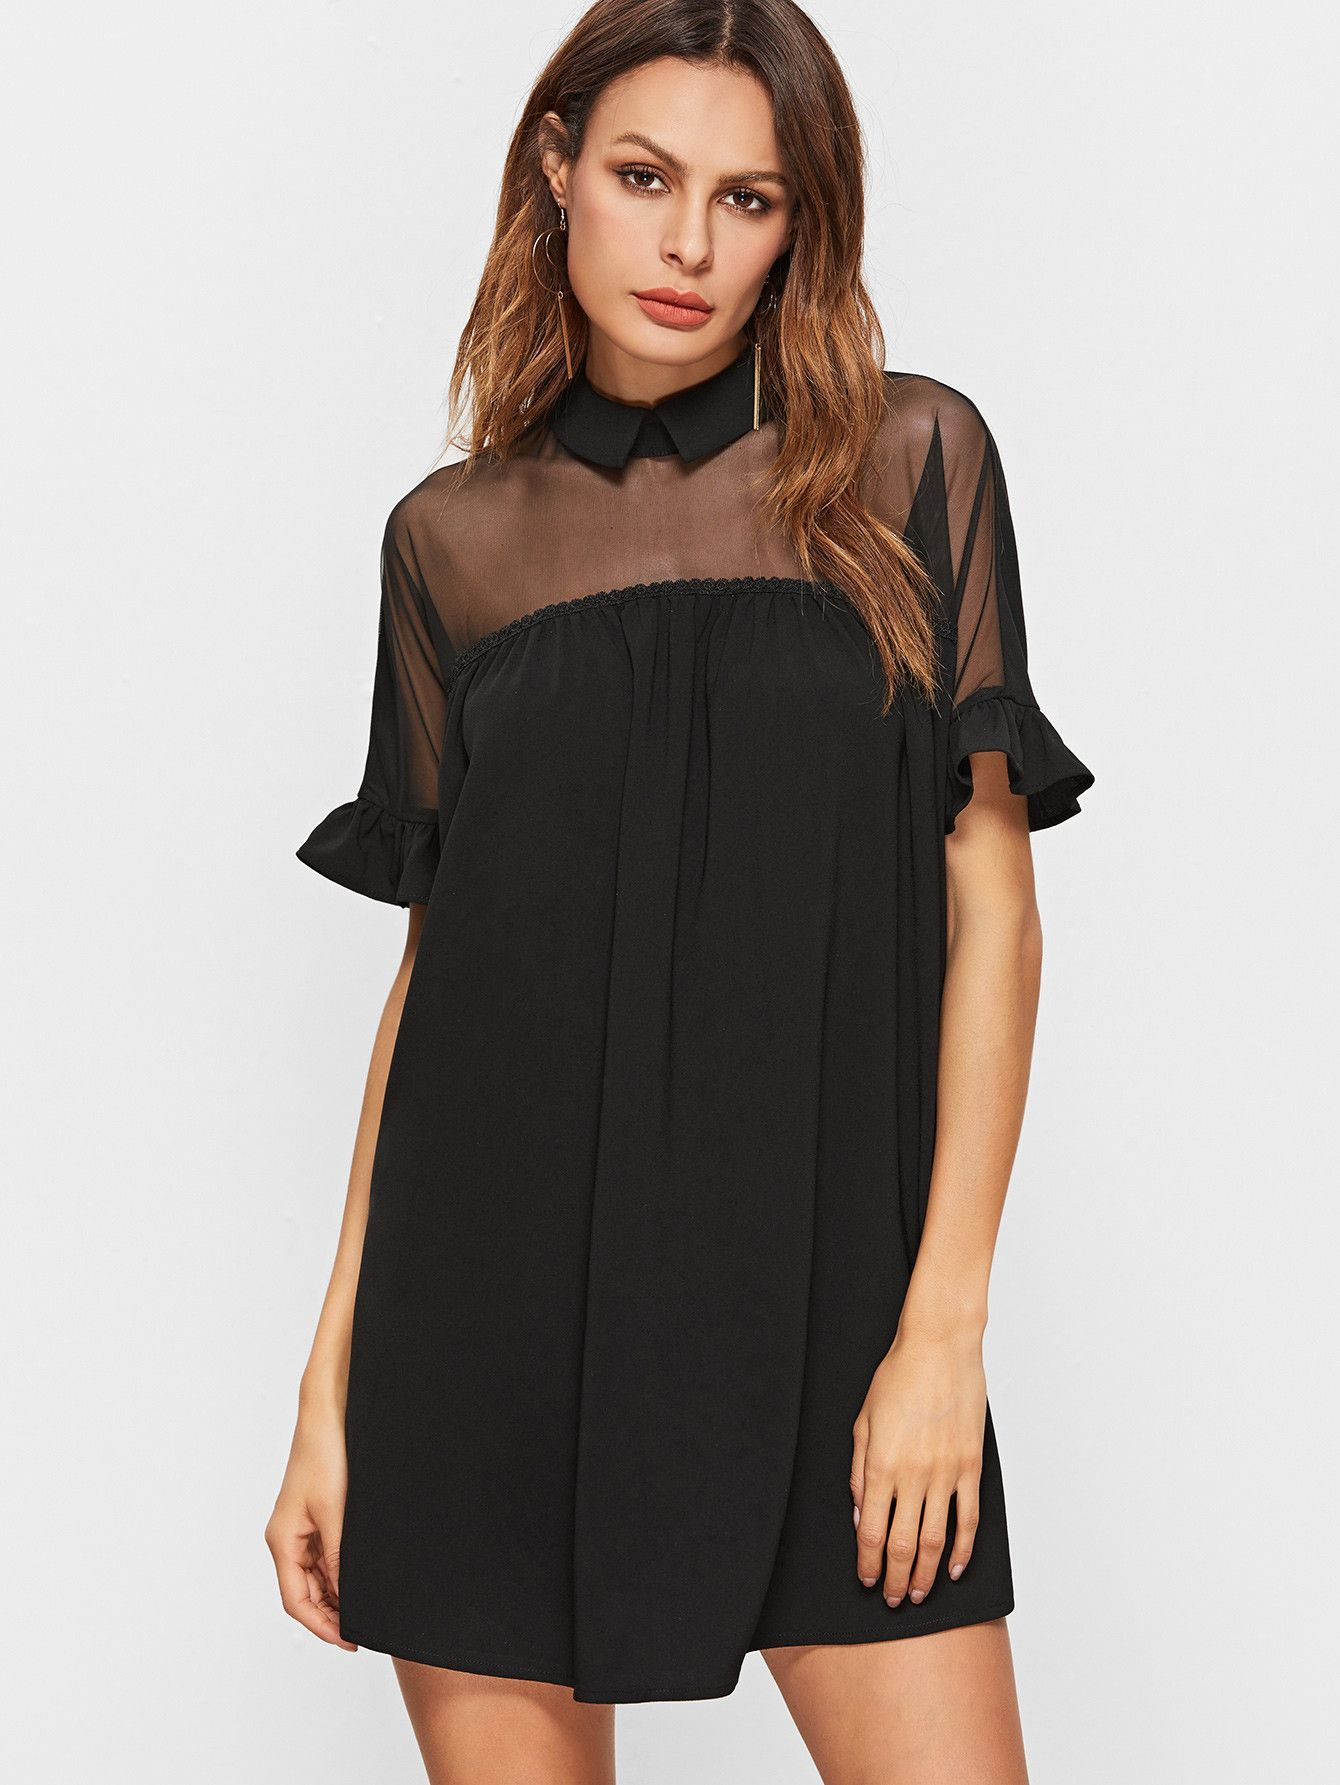 84a650a0a1 Mesh top with collar design and ruffle cuff sleeves. Trendy black dress  perfect for summer dances or dinner dates out! Cuff(Cm)  XS 27cm